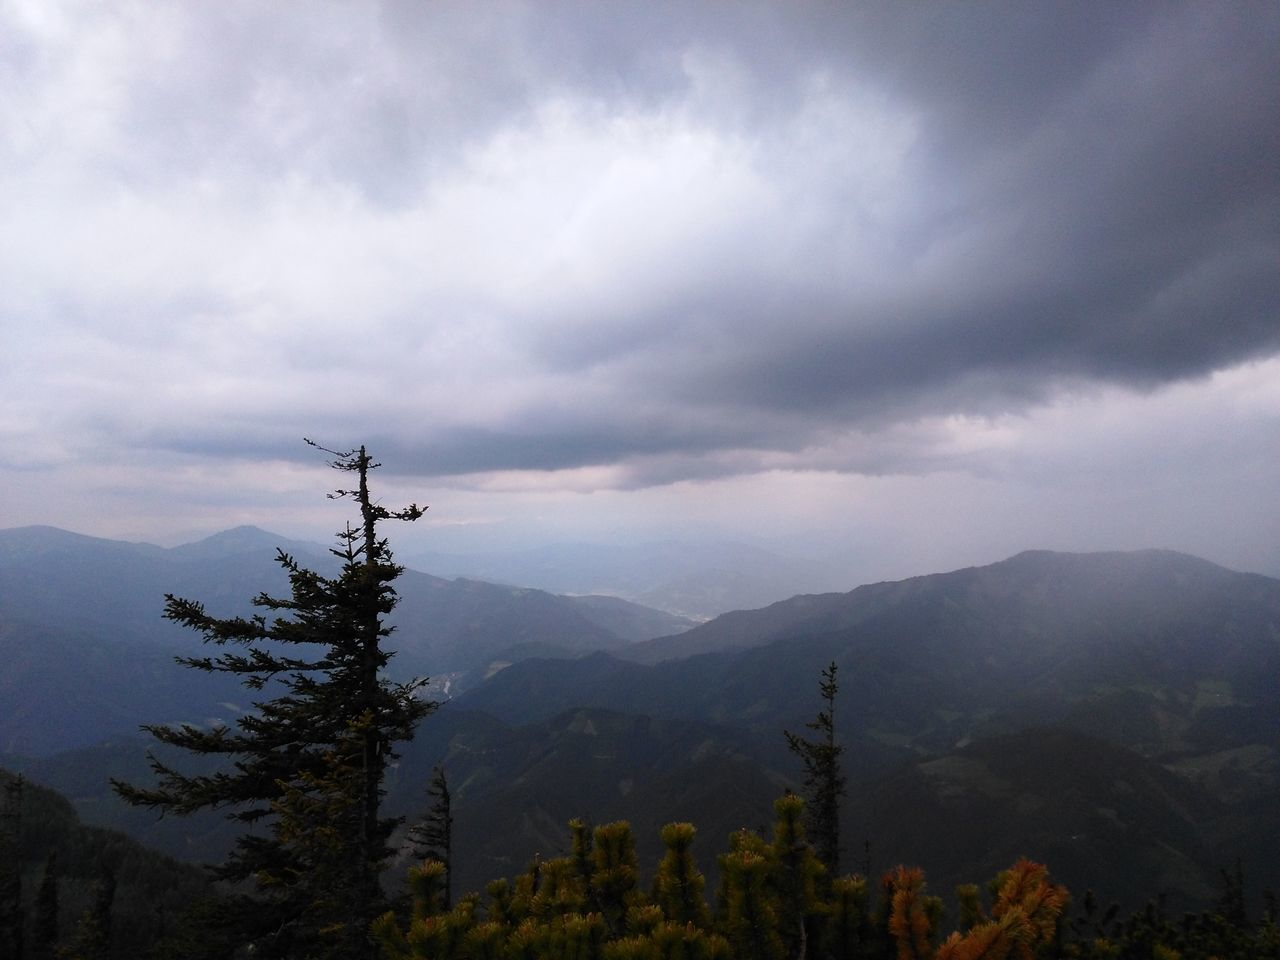 mountain, nature, sky, beauty in nature, no people, scenics, outdoors, day, scenery, range